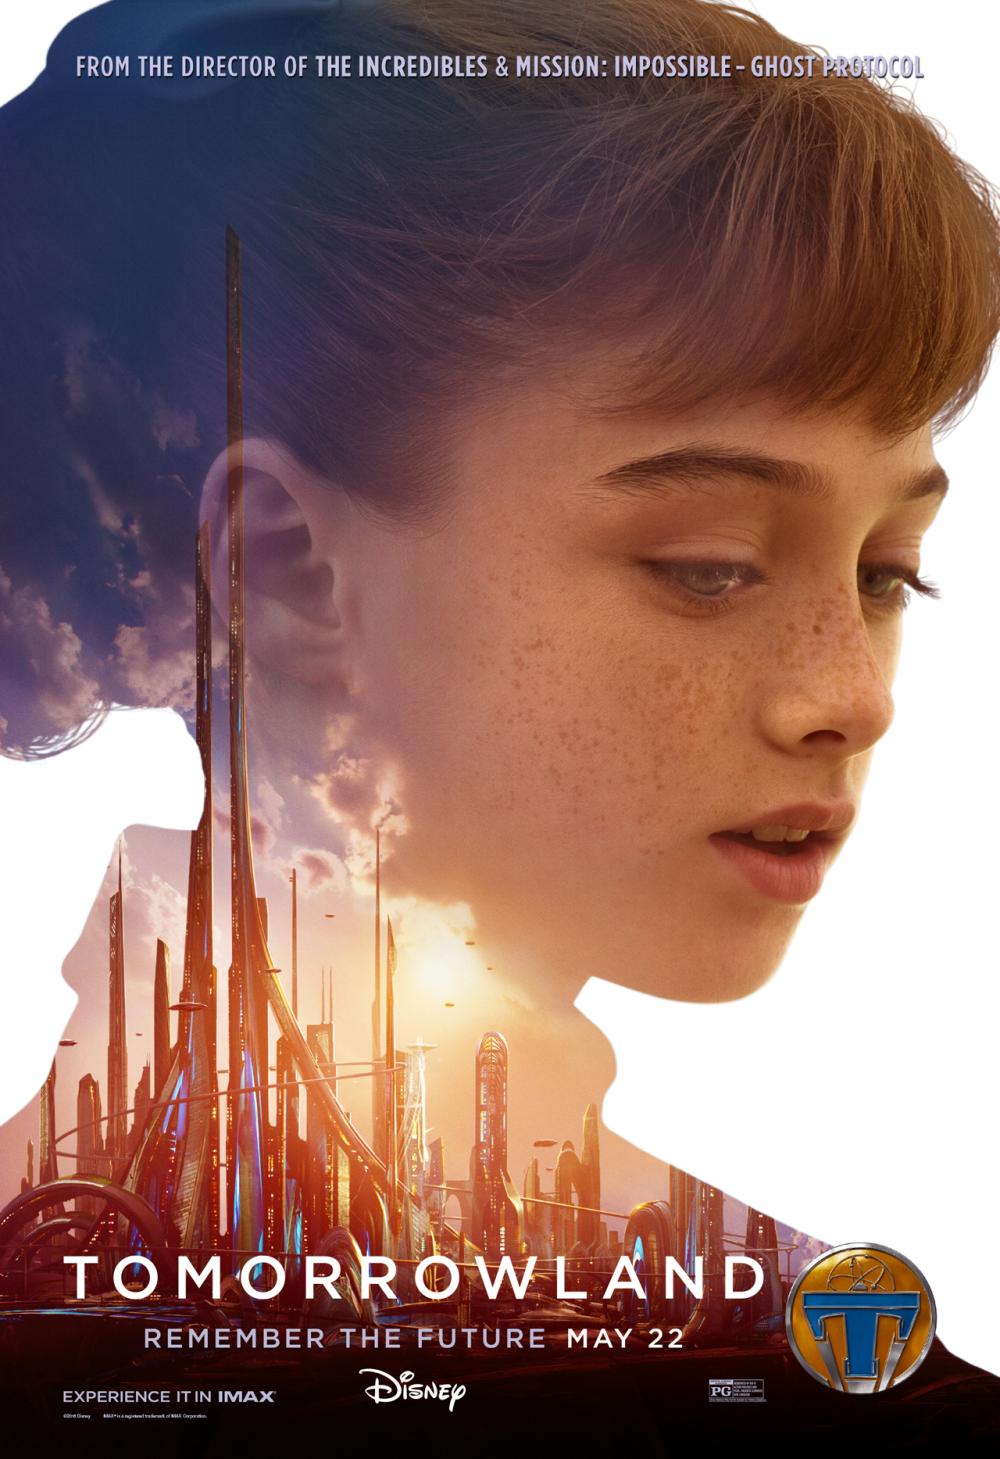 Disney geeft personageposters 'Project T' vrij